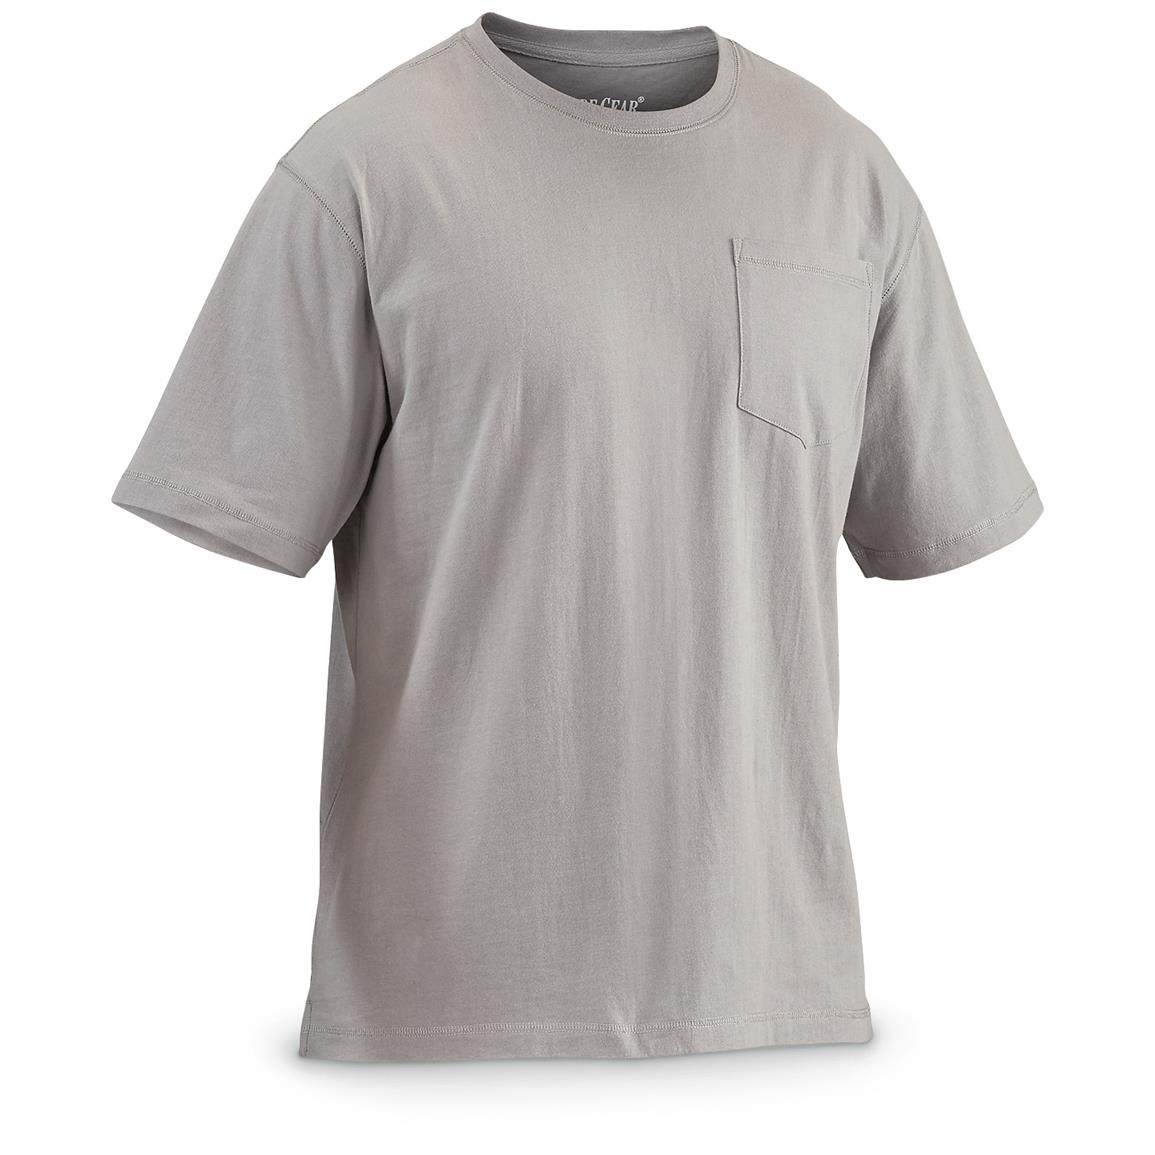 Guide Gear Men's Heavy-Weight Pocket Short-Sleeve T-Shirt, Gray